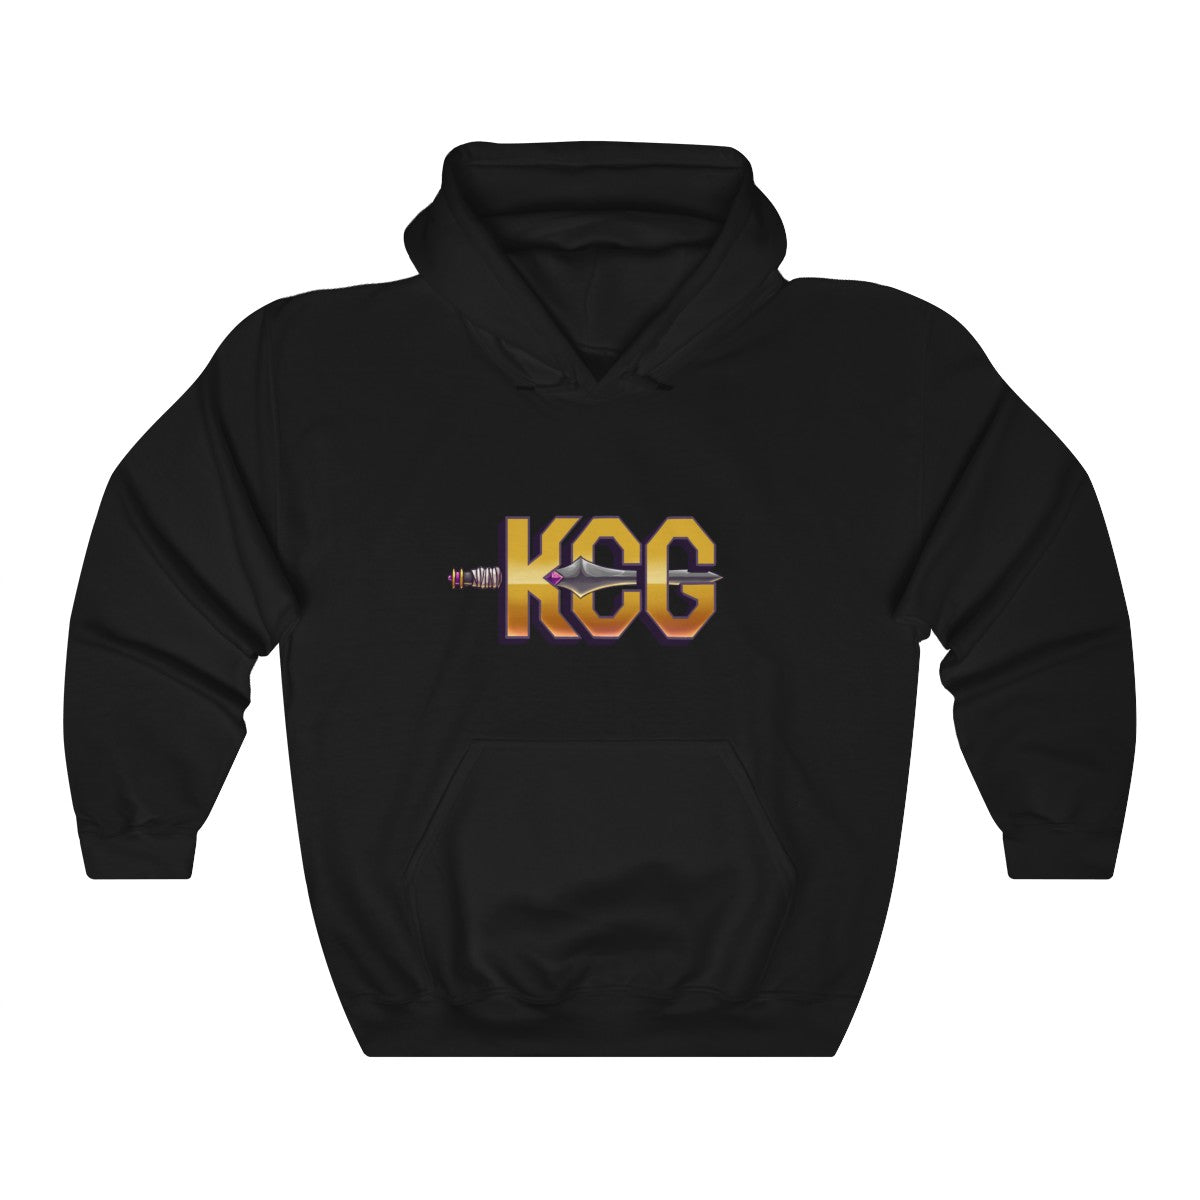 KCG Front and Back Heavy Blend™ Hooded Sweatshirt